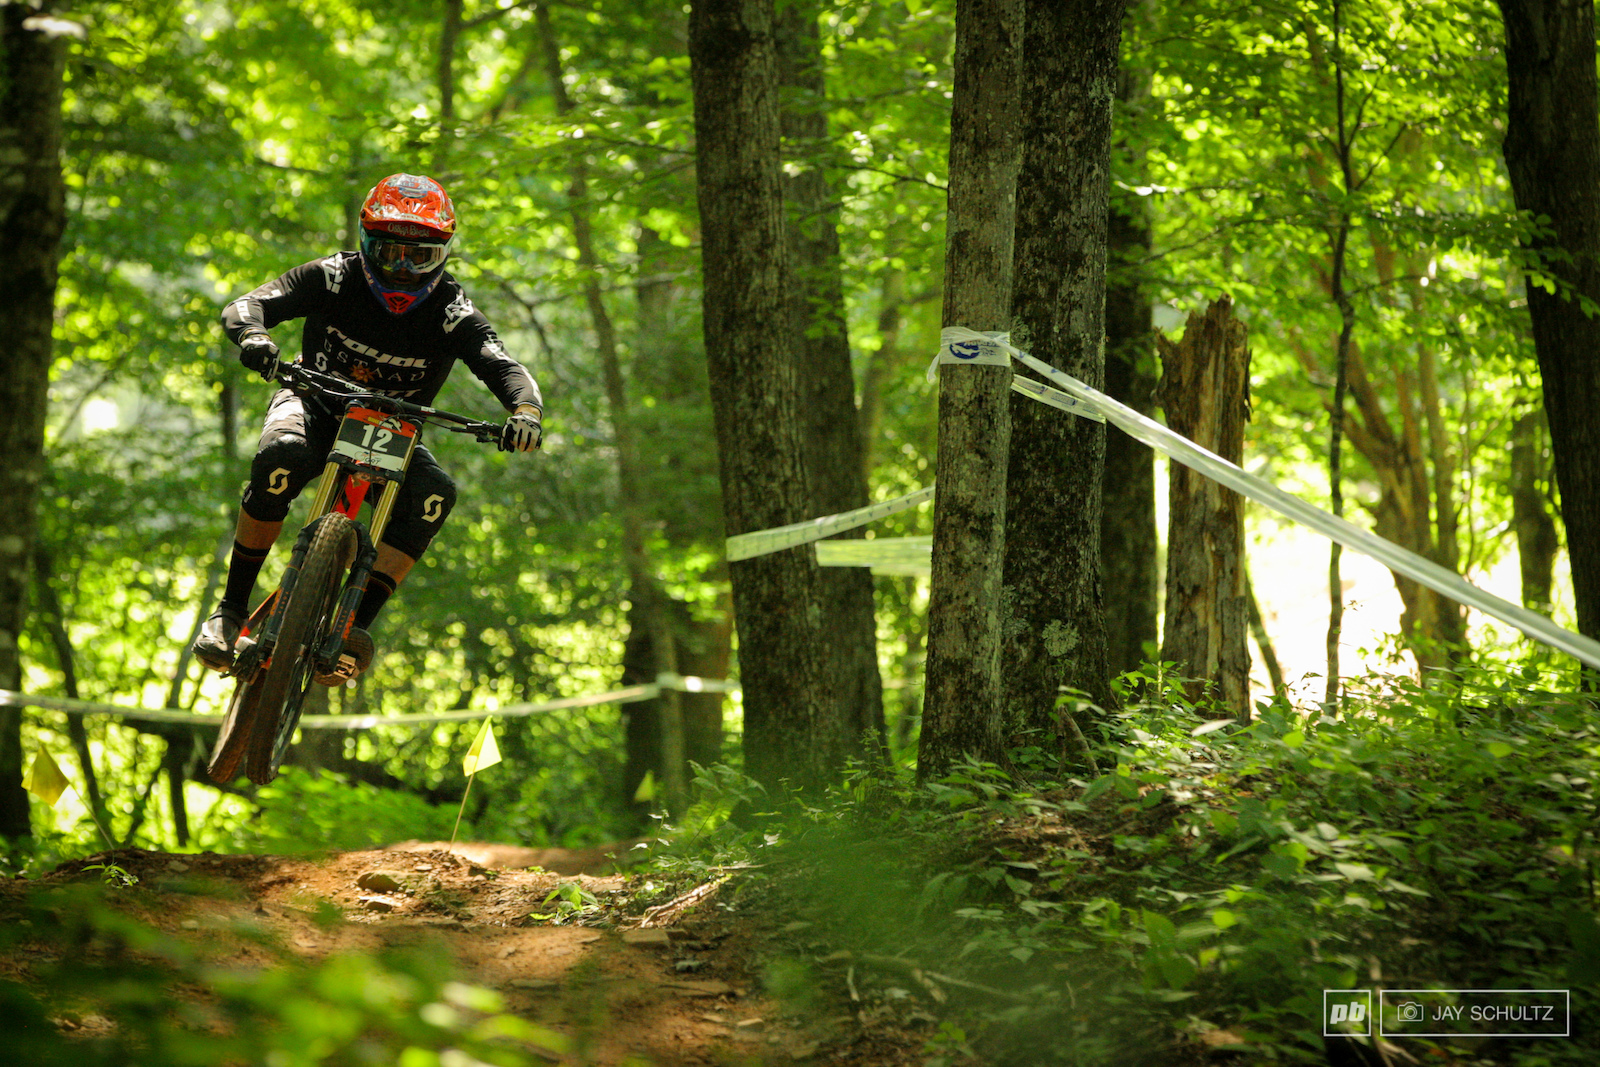 Putting into Perspective - Neko Mulally s times over the past three years....... 2013 Pro GRT at Snowshoe 4 08.97 2014 Pro GRT at Snowshoe 4 00.47 2015 Pro GRT at Snowshoe 3 17.9. The bar has been raised. It will take the right course but who s it gonna be that cracks into the twos No doubt we ll see that in the near future and I hope I am there. The third two-fer of the day.